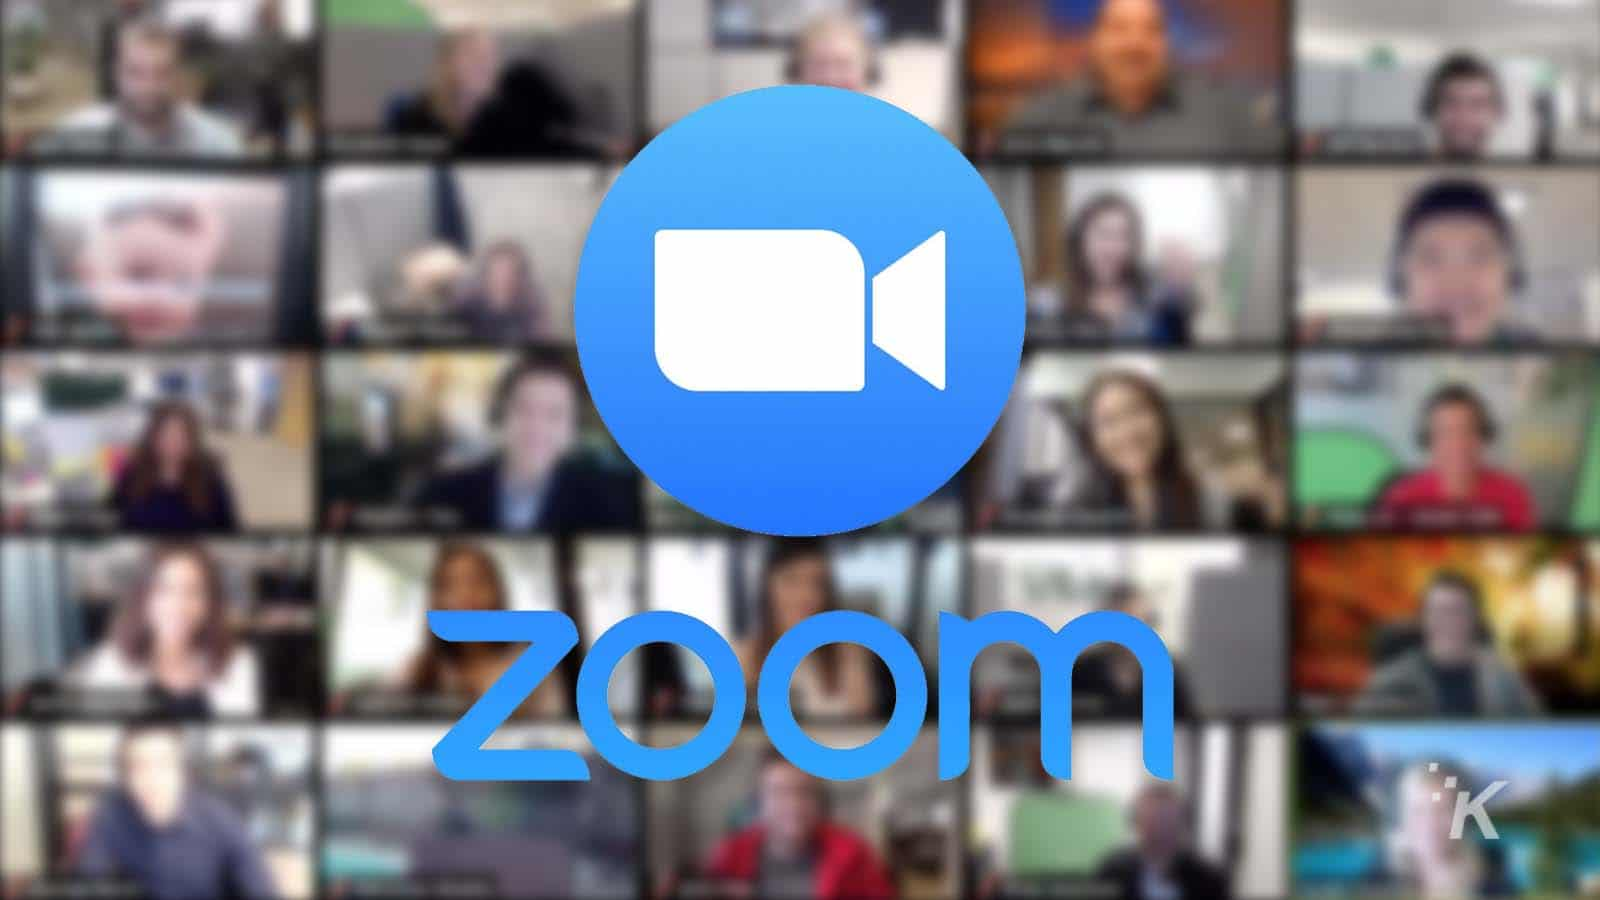 Zoom has more security enhancements